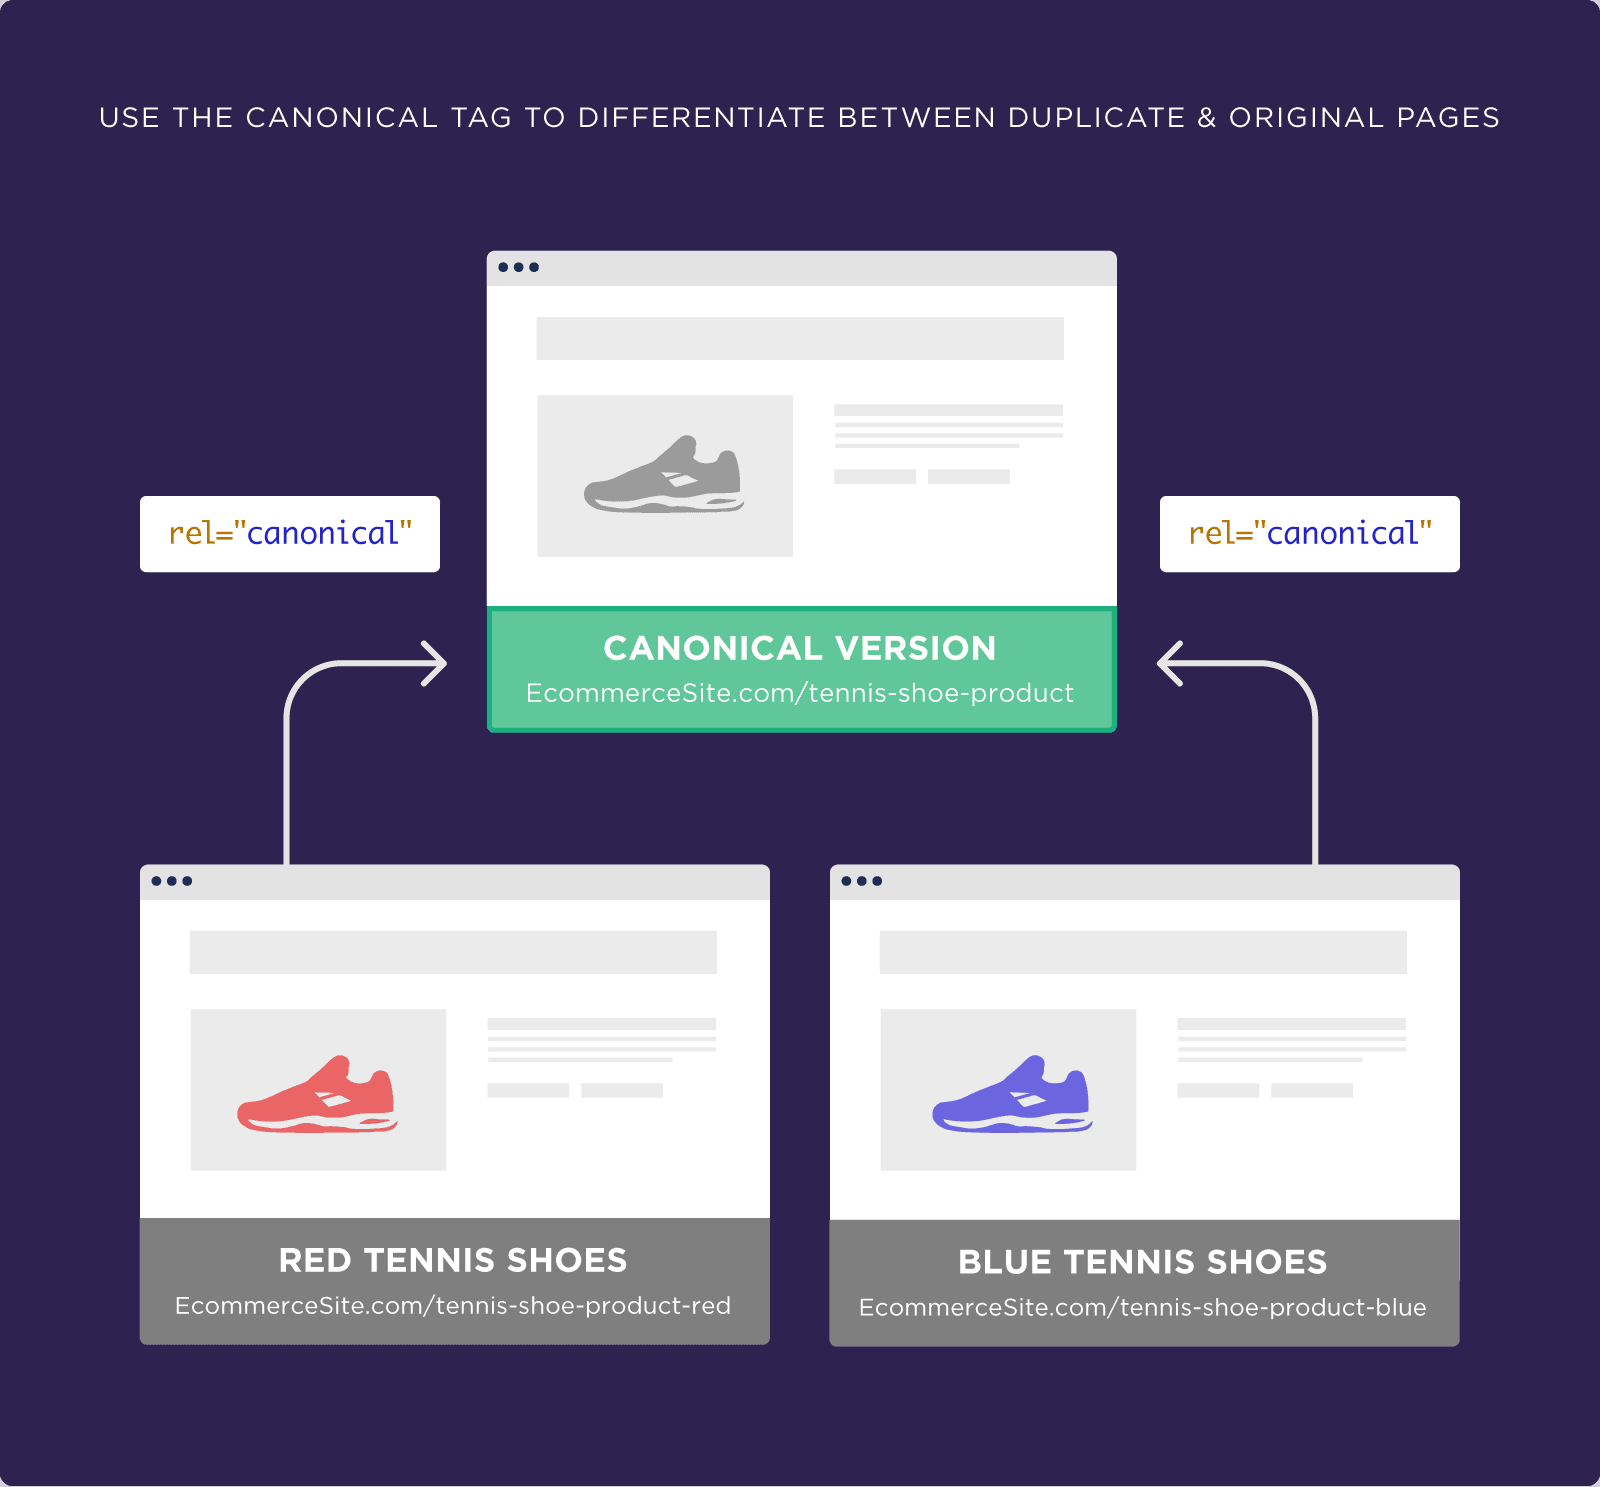 Use the canonical tag to differentiate between duplicate and original pages